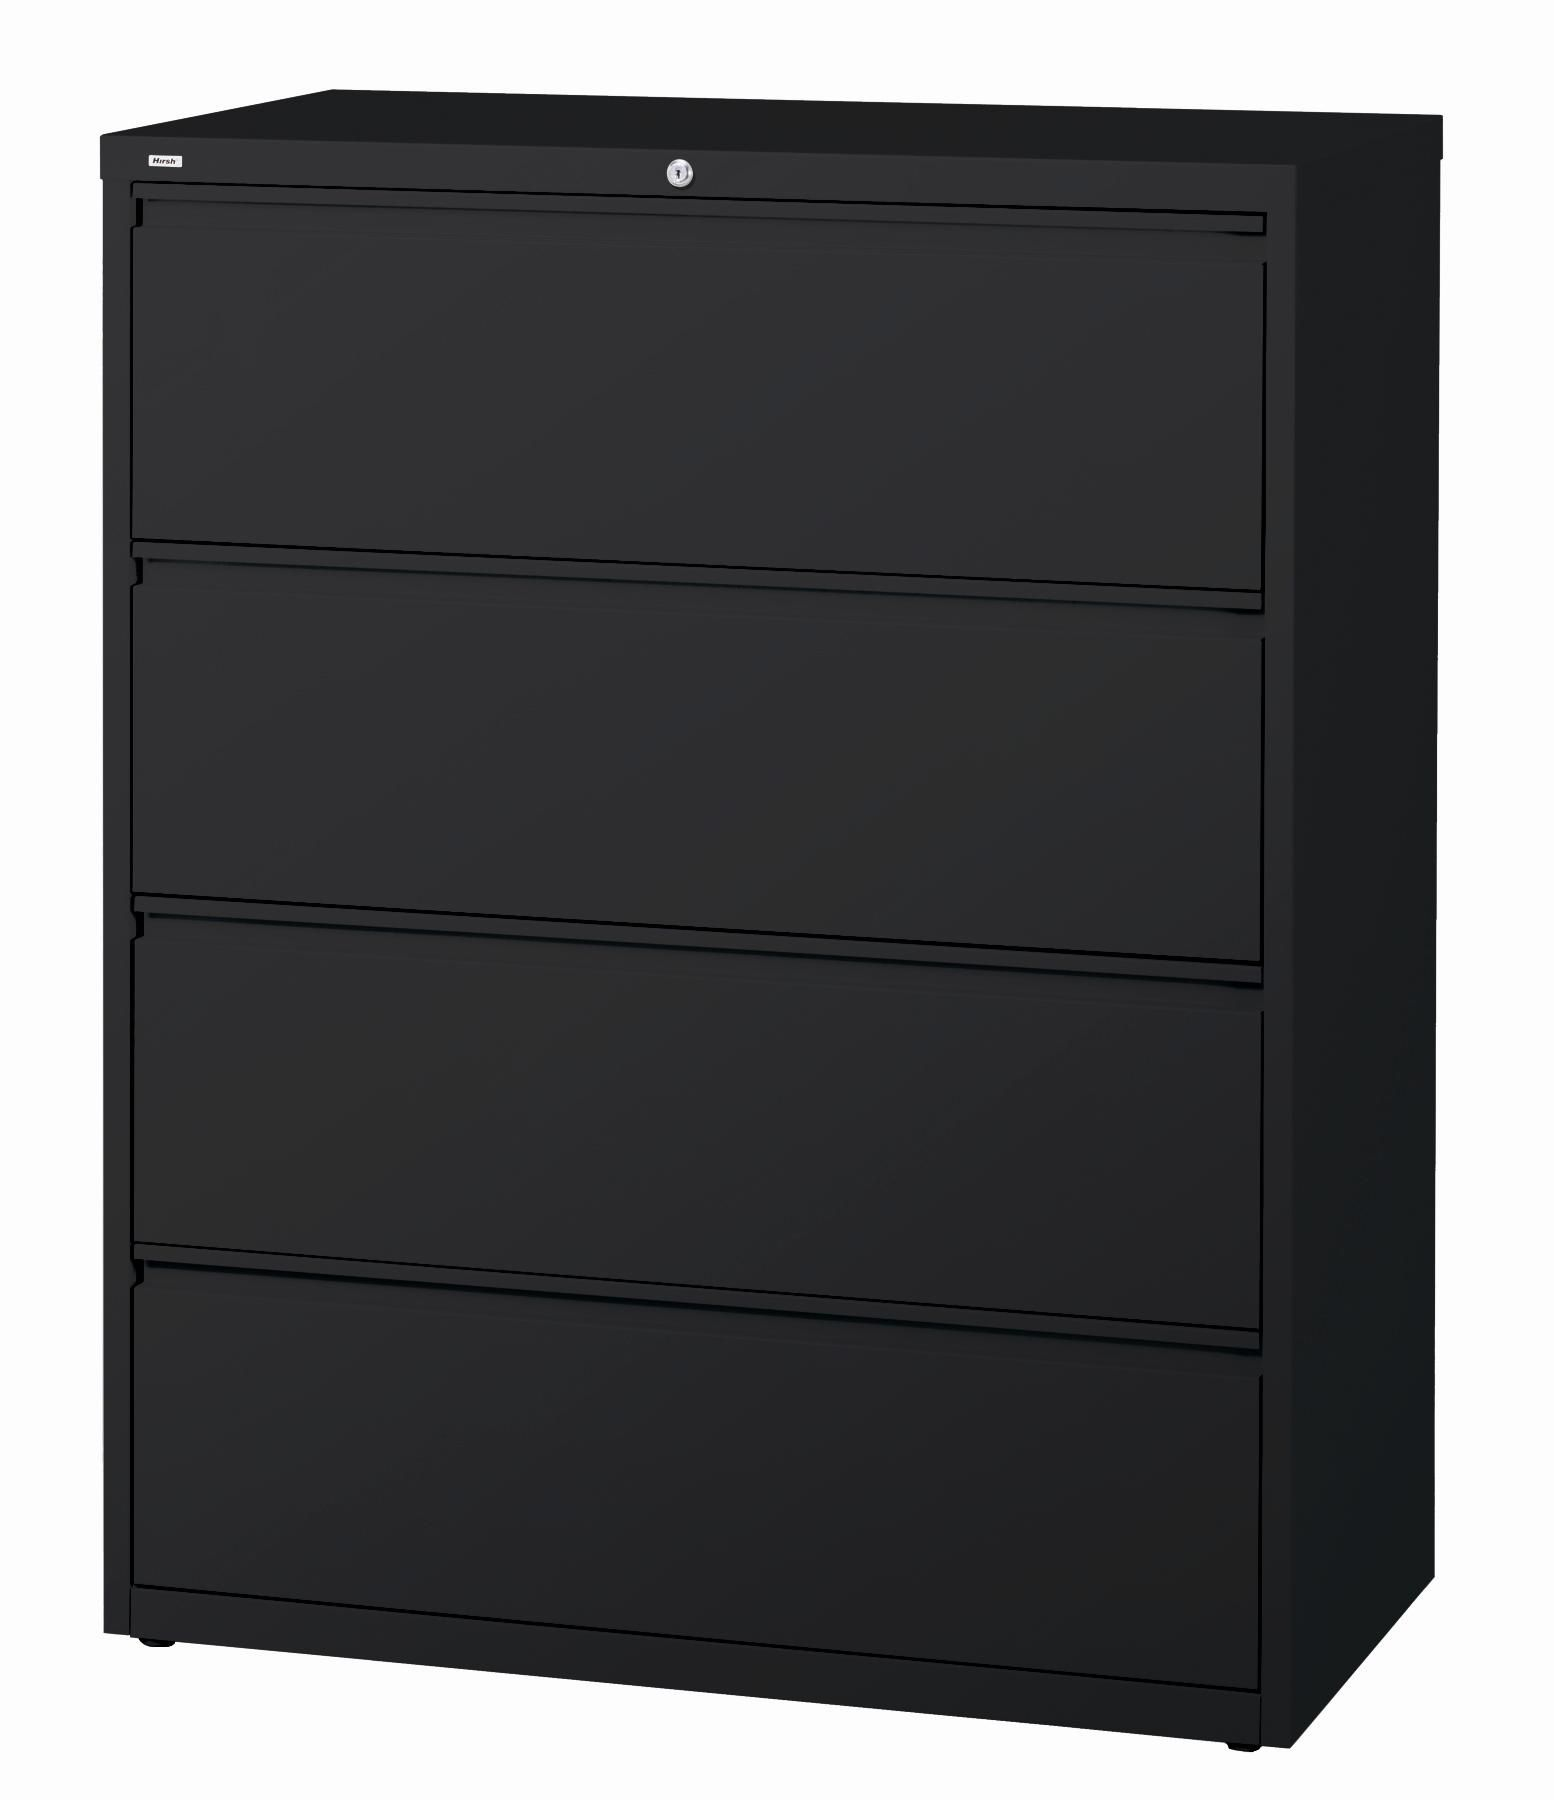 4 Drawer Lateral File Cabinet Black